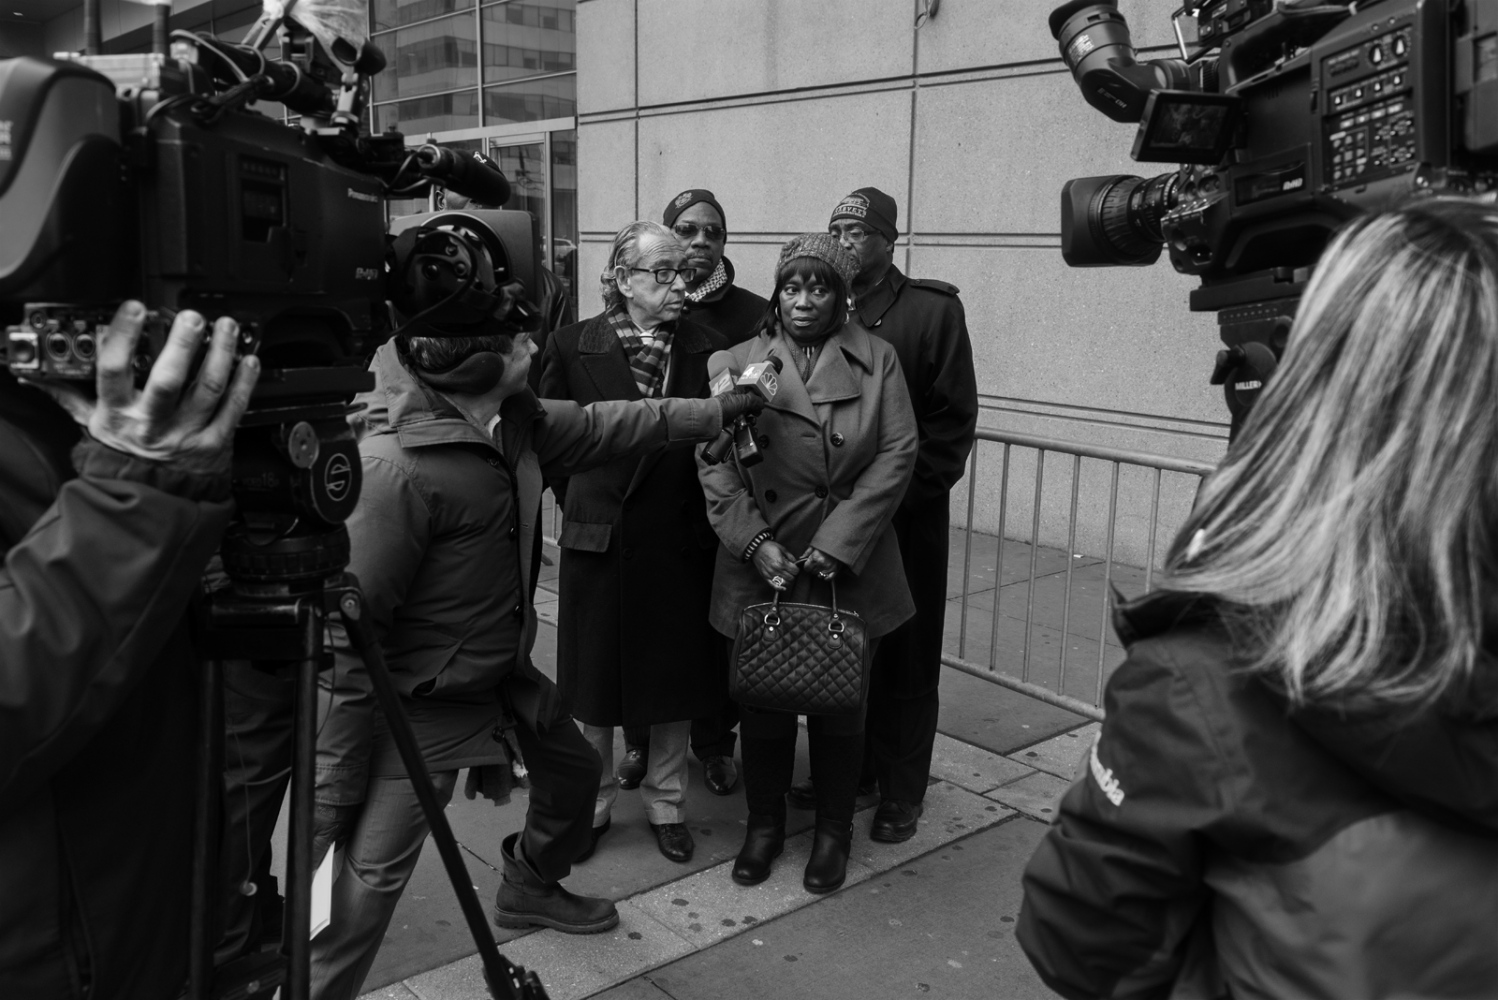 Margaret Burton, the mother of Jahmal Lighfoot, a former member of the Bloods, who was brutally beaten up by Correctional Officers in 2012, is interviewed outside the Bronx Criminal Court on February 17. Her son suffered several injuries and had his nose and eyes sockets broken after the security chief at the time, Eliseo Perez, ordered correctional officers to assault him. He and five other CO's were convicted on June 6th of the same year.February 17th, 2016